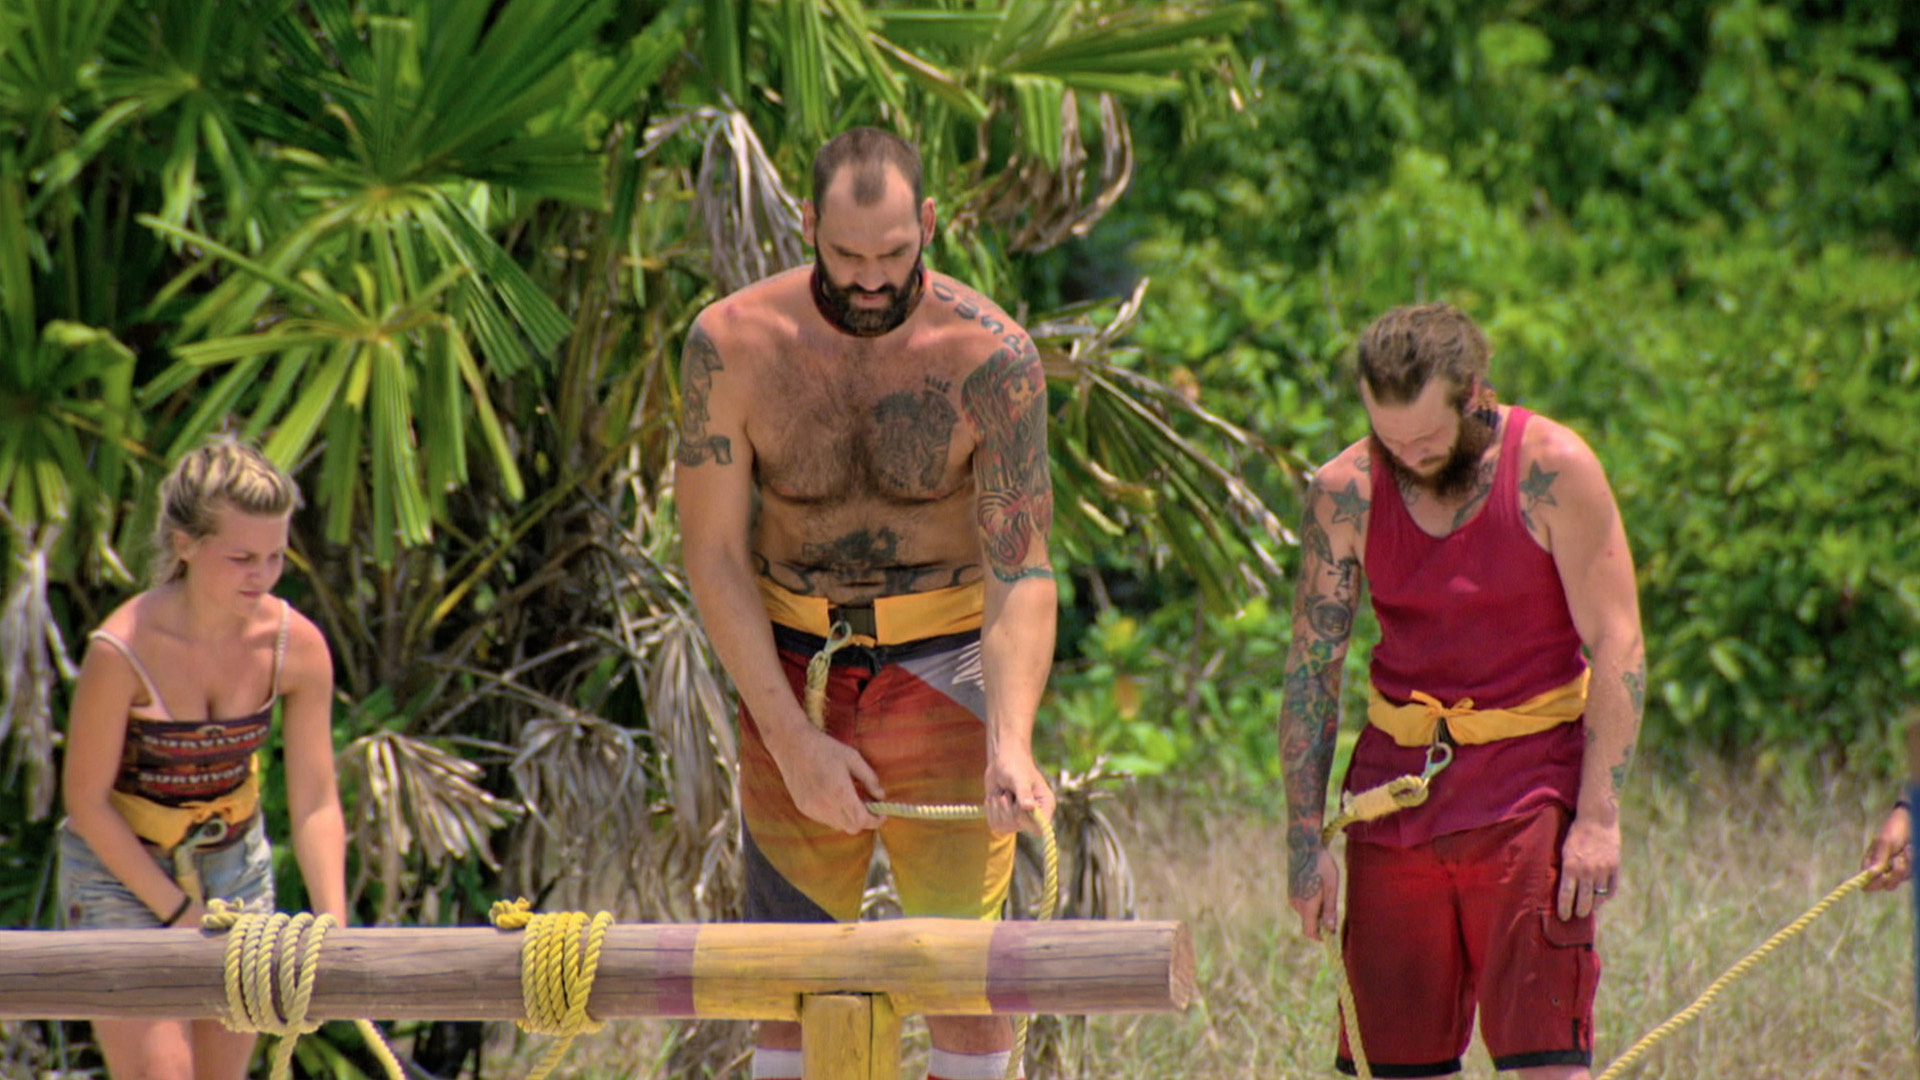 Julia, Scot, and Jason are tied together during the Reward Challenge.